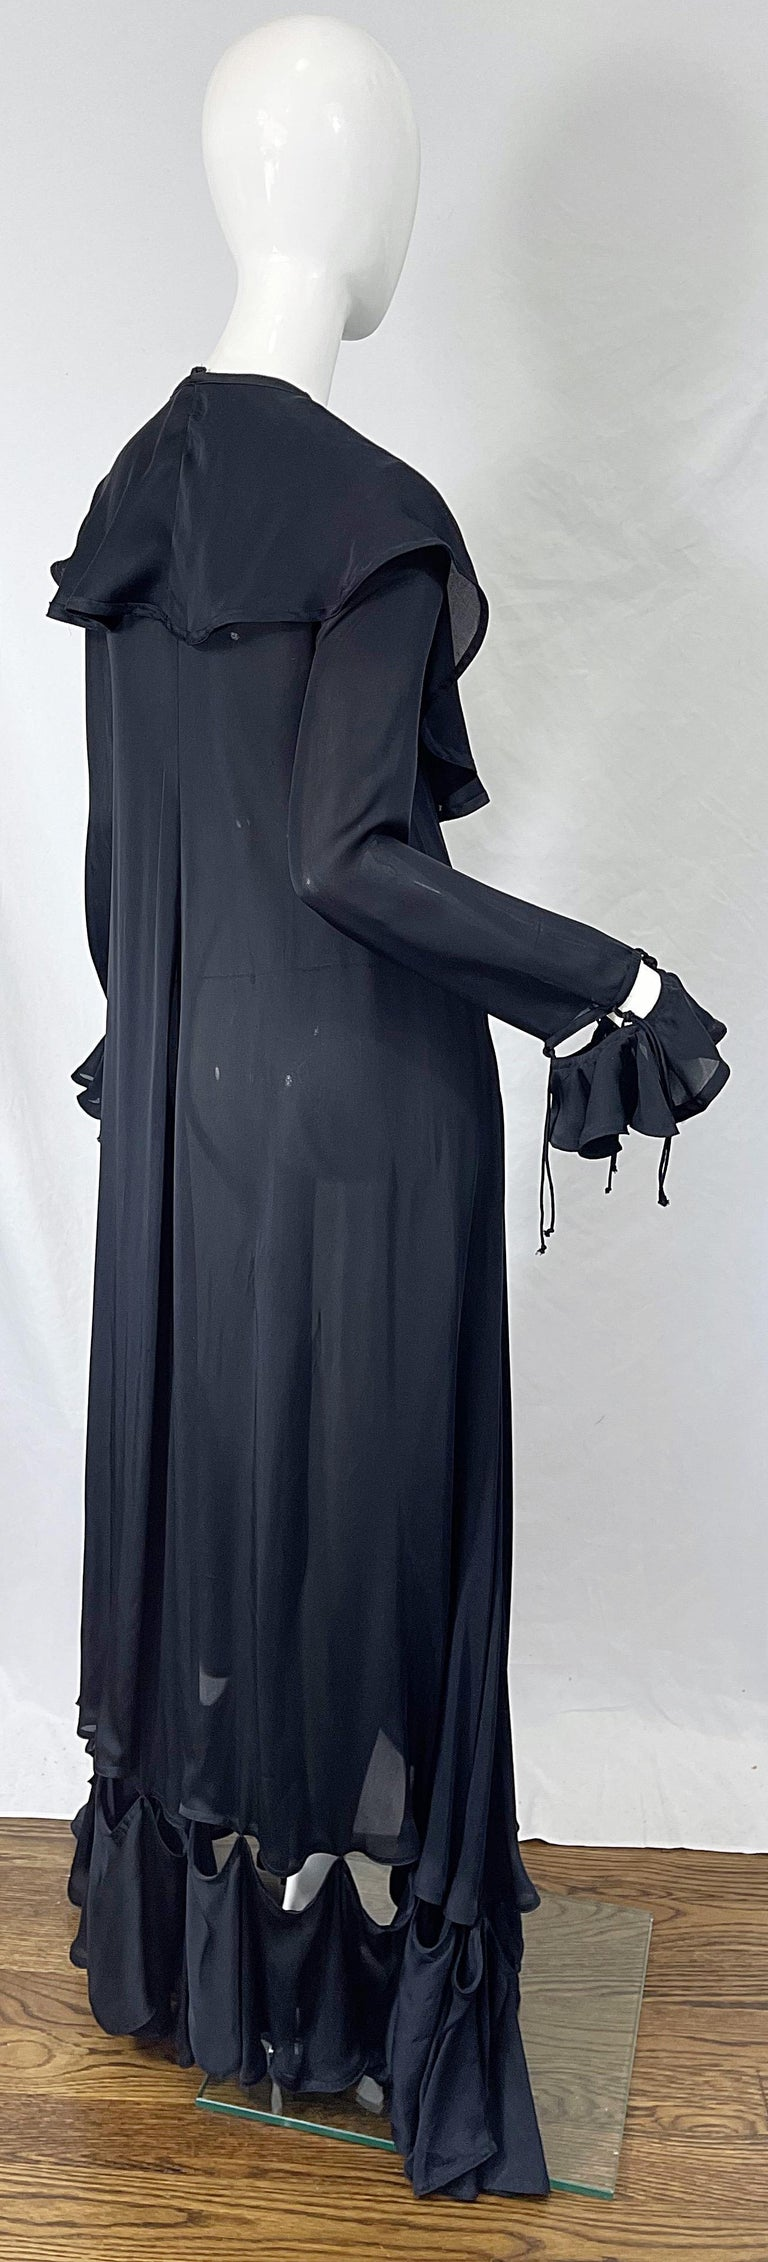 Yves Saint Laurent by Tom Ford Fall 2003 Runway Black Silk Chiffon Gown Size 38 For Sale 10